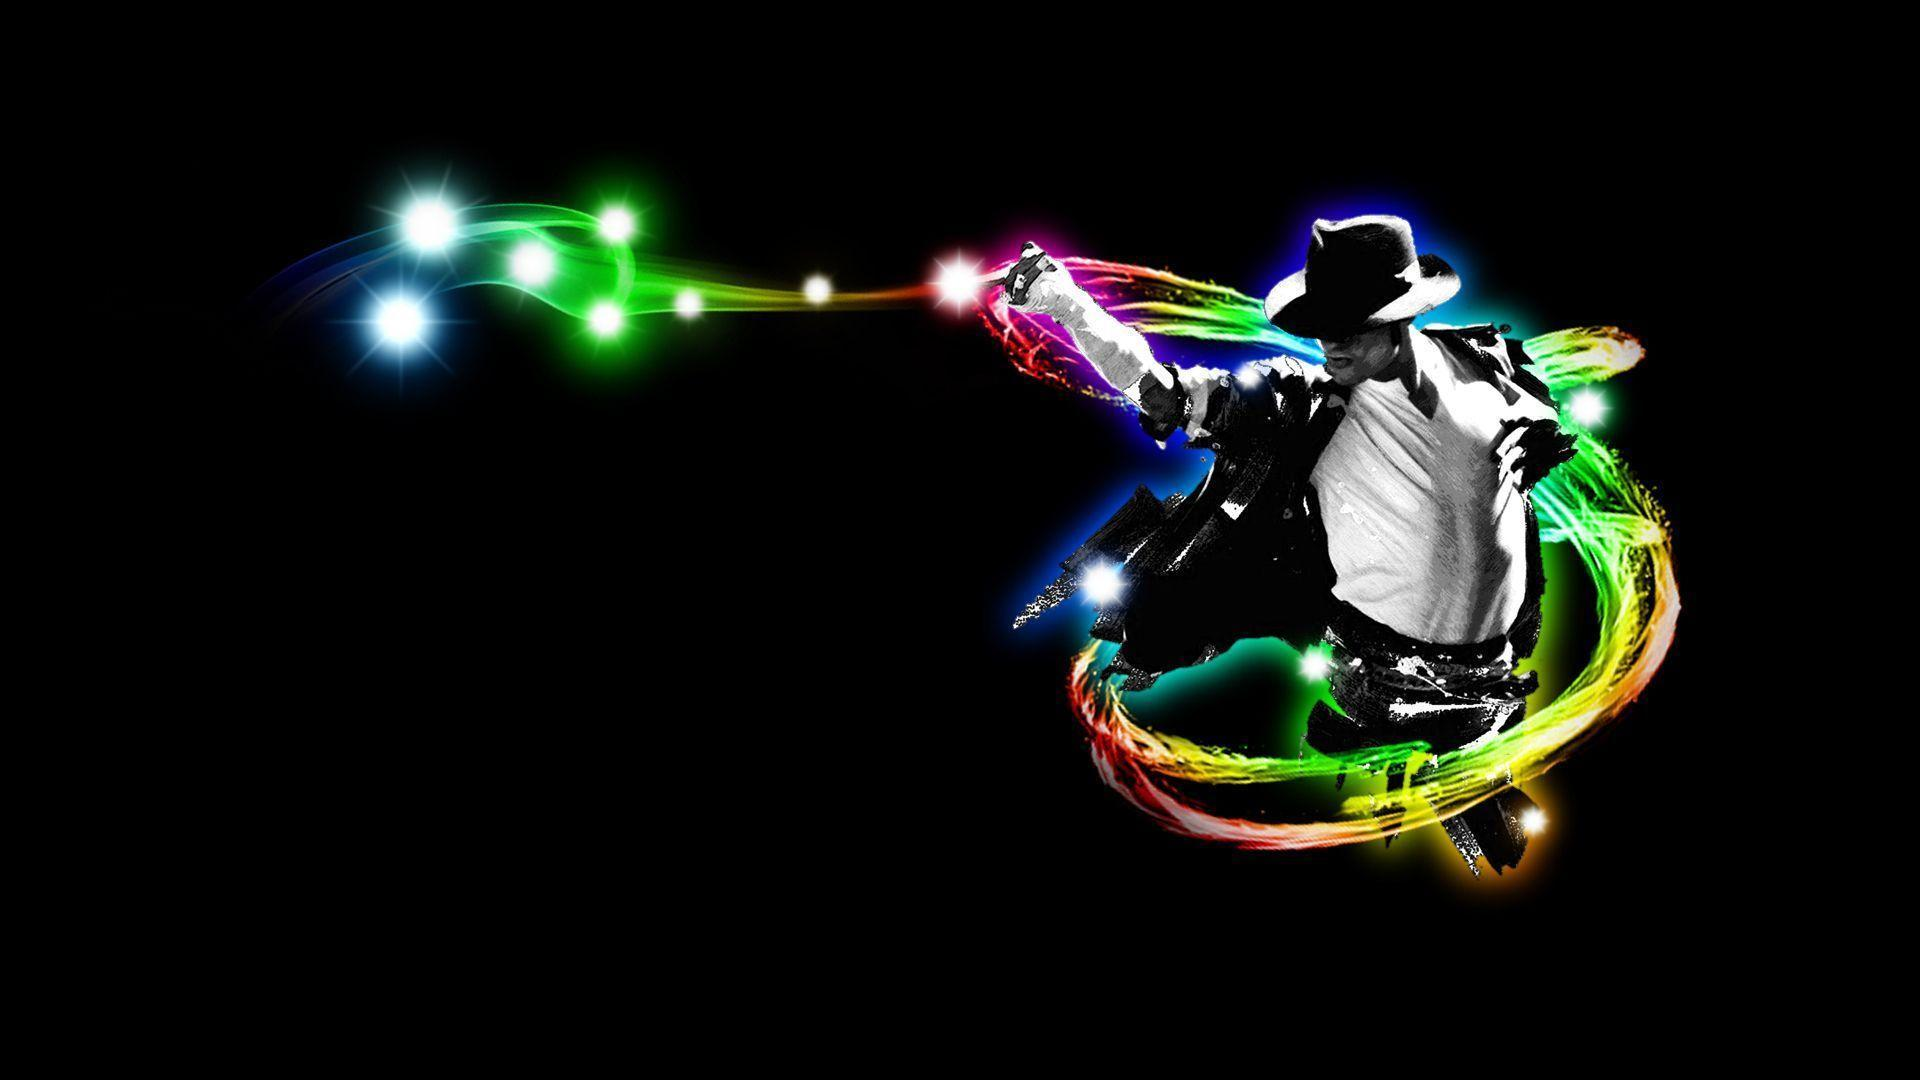 KING OF POP - Michael Jackson Wallpaper (18607341) - Fanpop